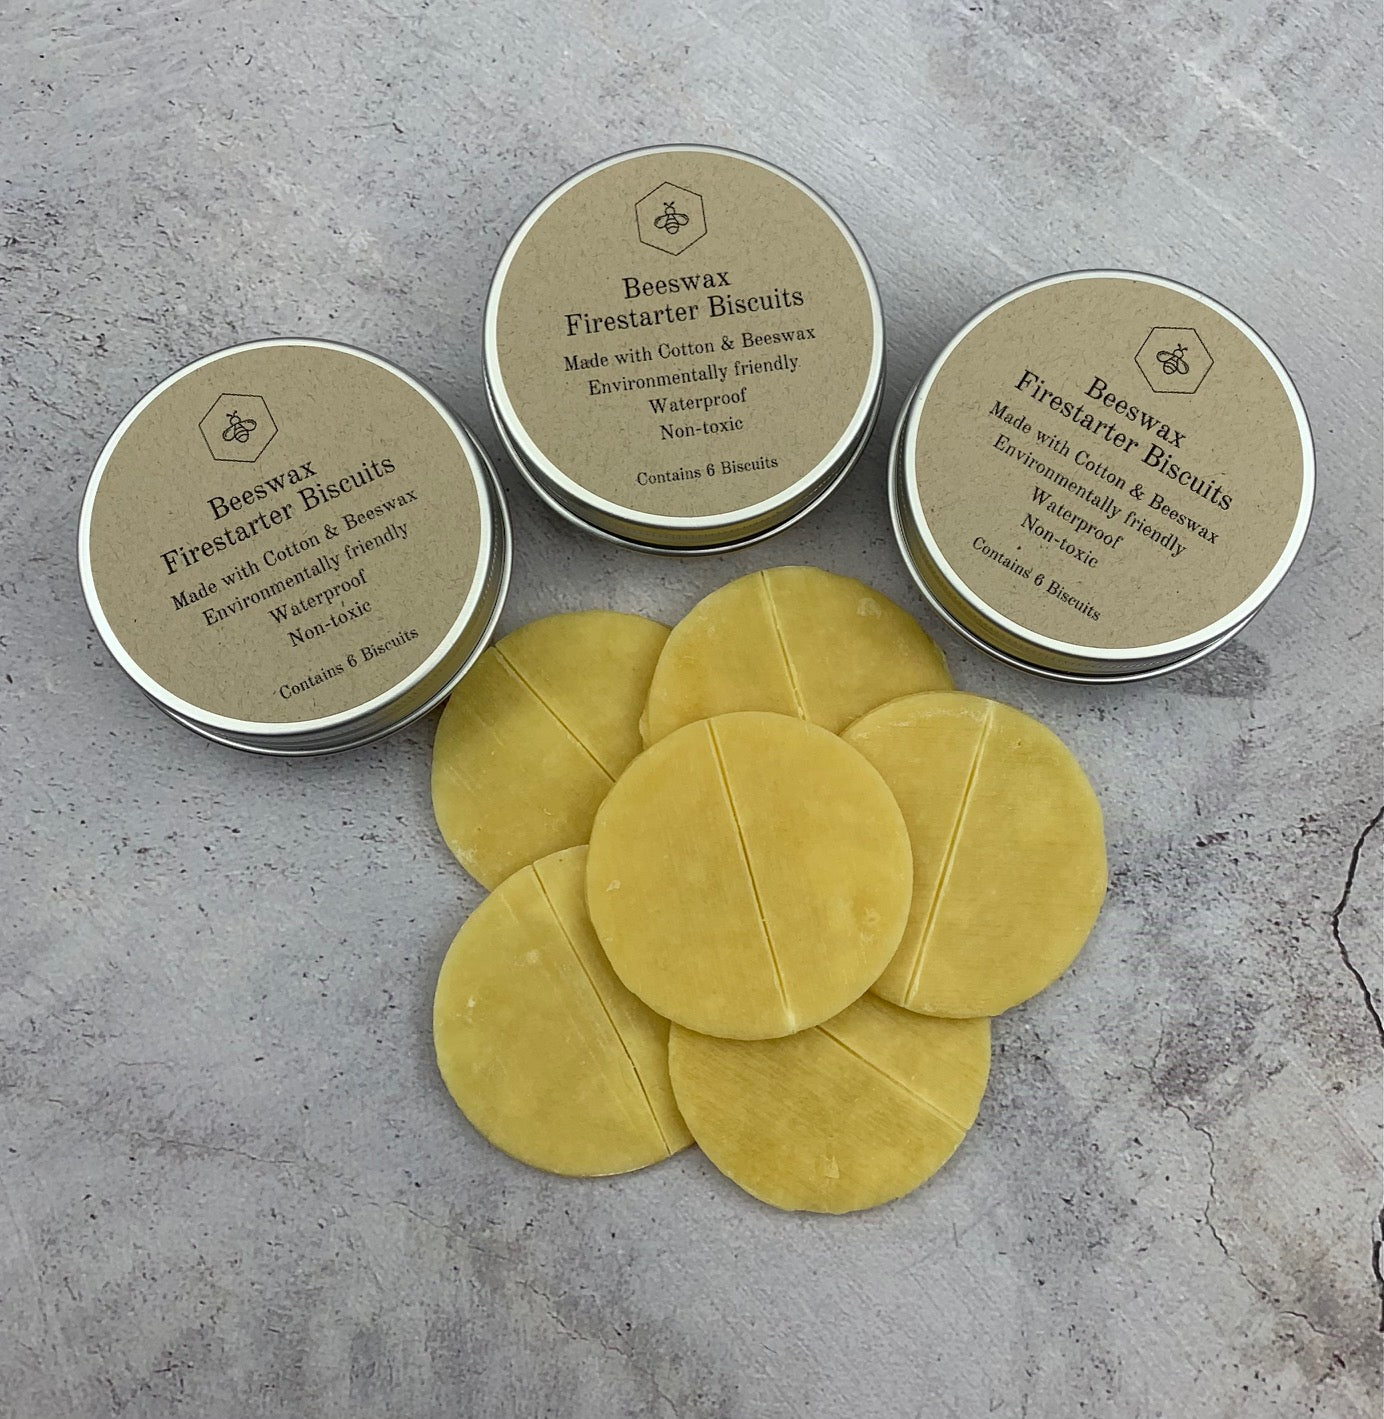 Beeswax Fire-starter Biscuits